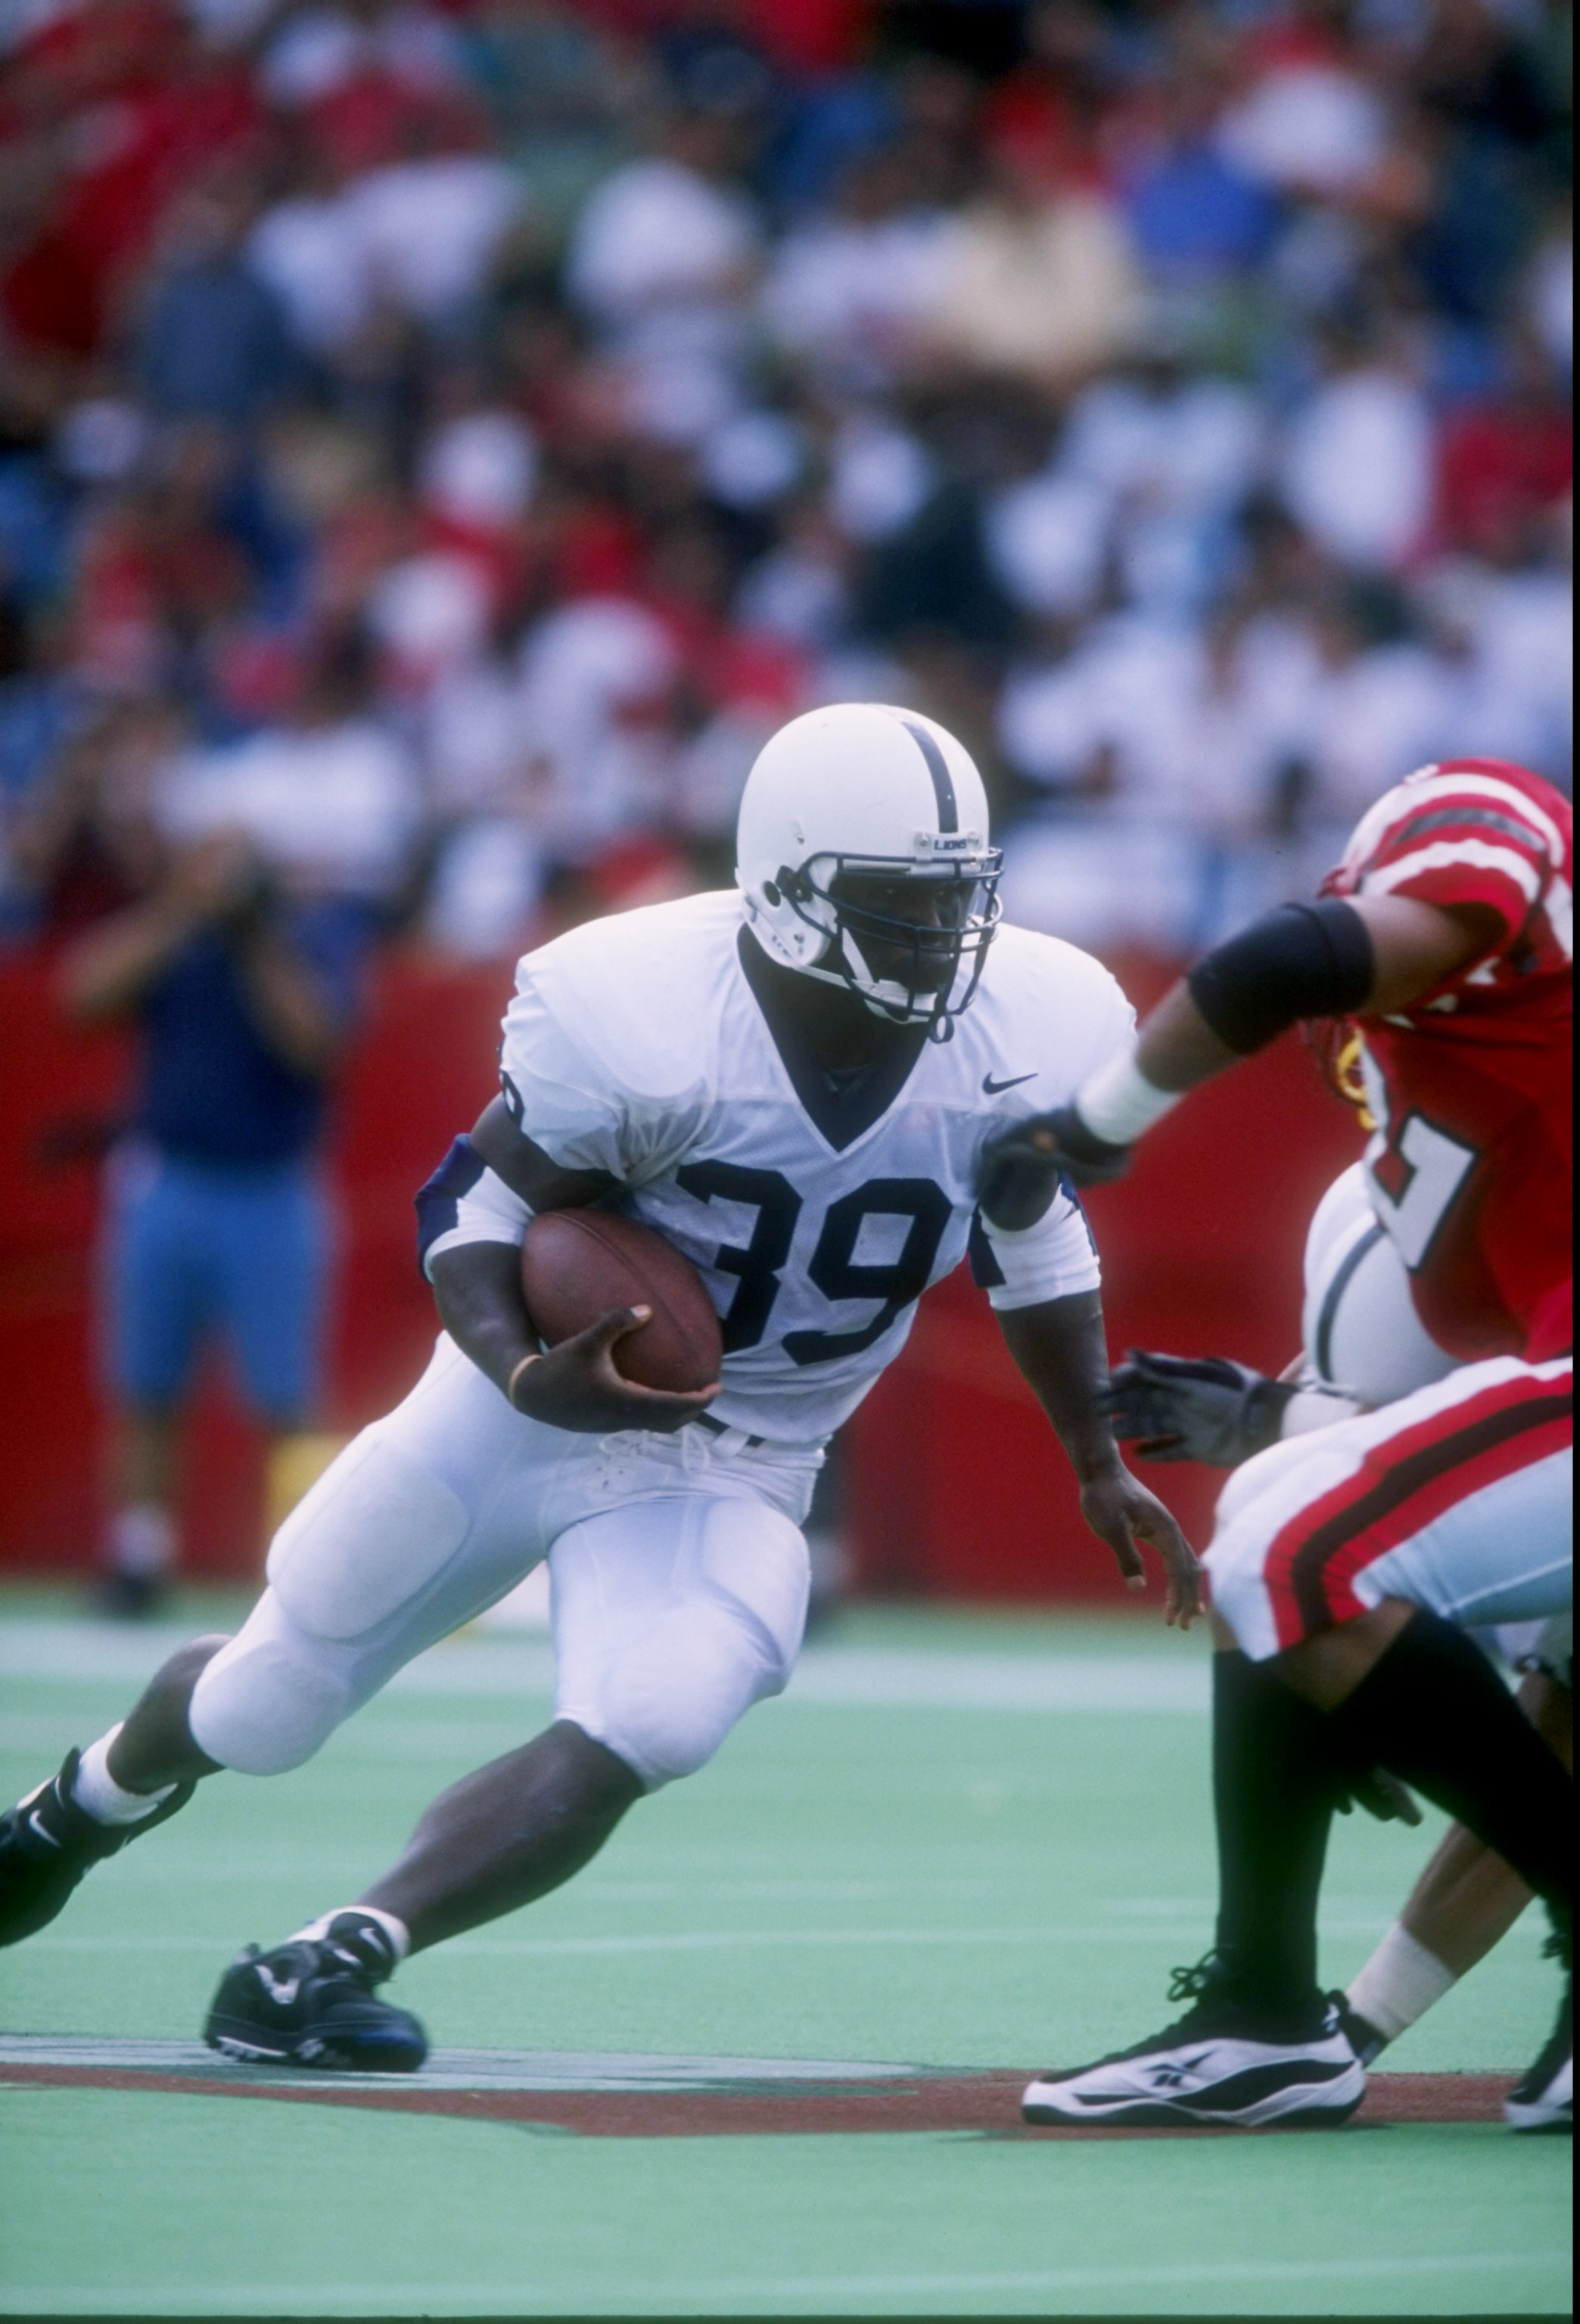 20 Sep 1997: Tailback Curtis Enis of the Penn State Nittany Lions runs down the field during a game against the Louisville Cardinals at Cardinal Stadium in Louisville, Kentucky. Penn State won the game 50-14